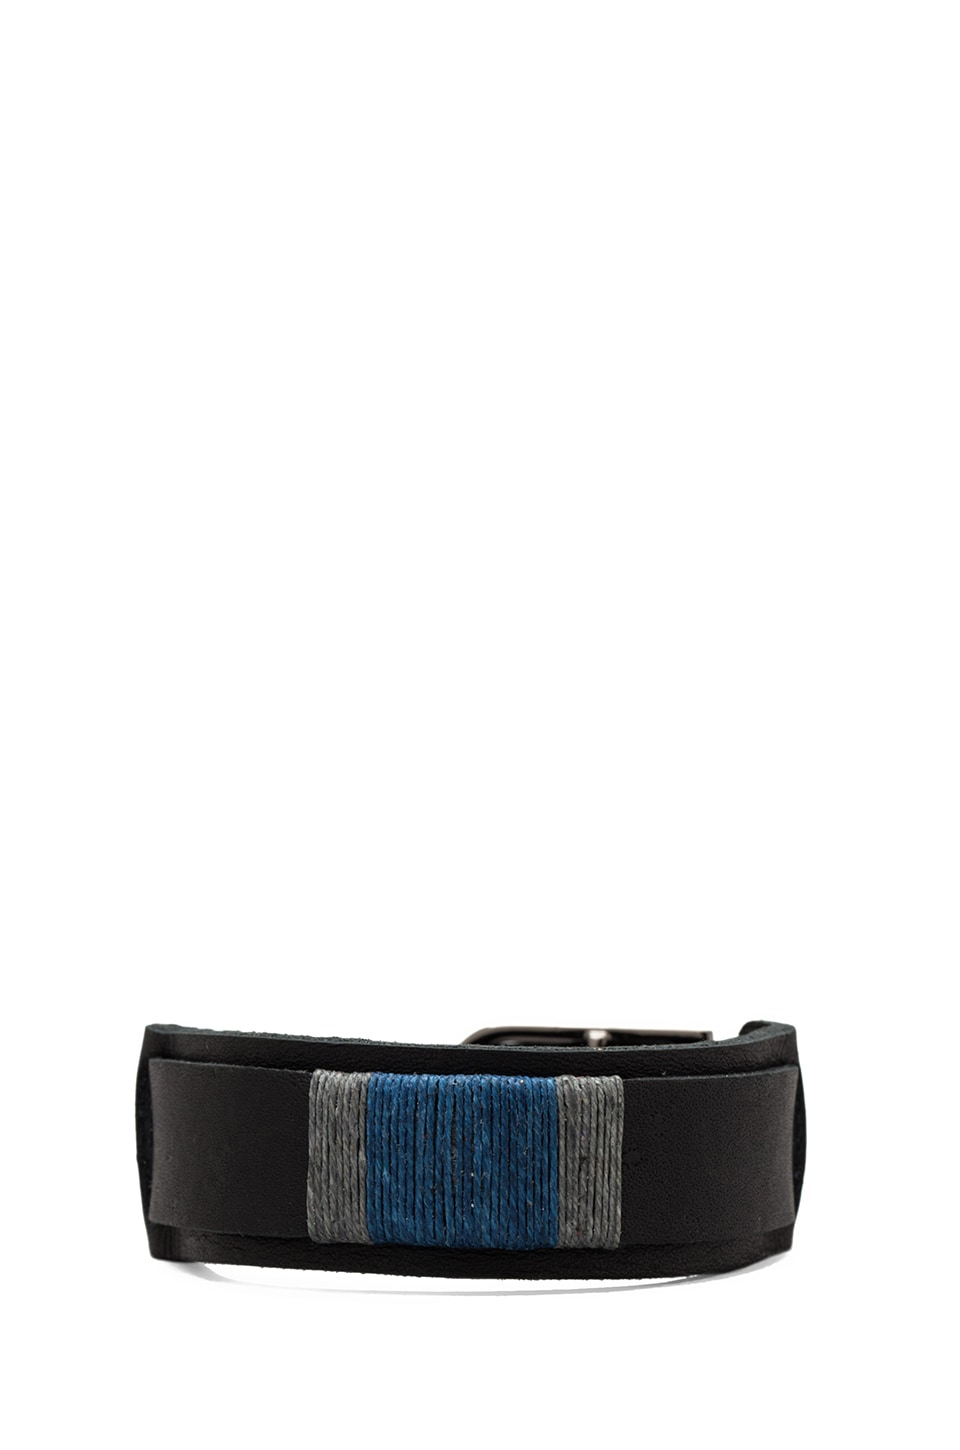 griffin Colton Slim Cuff in Black/Blue